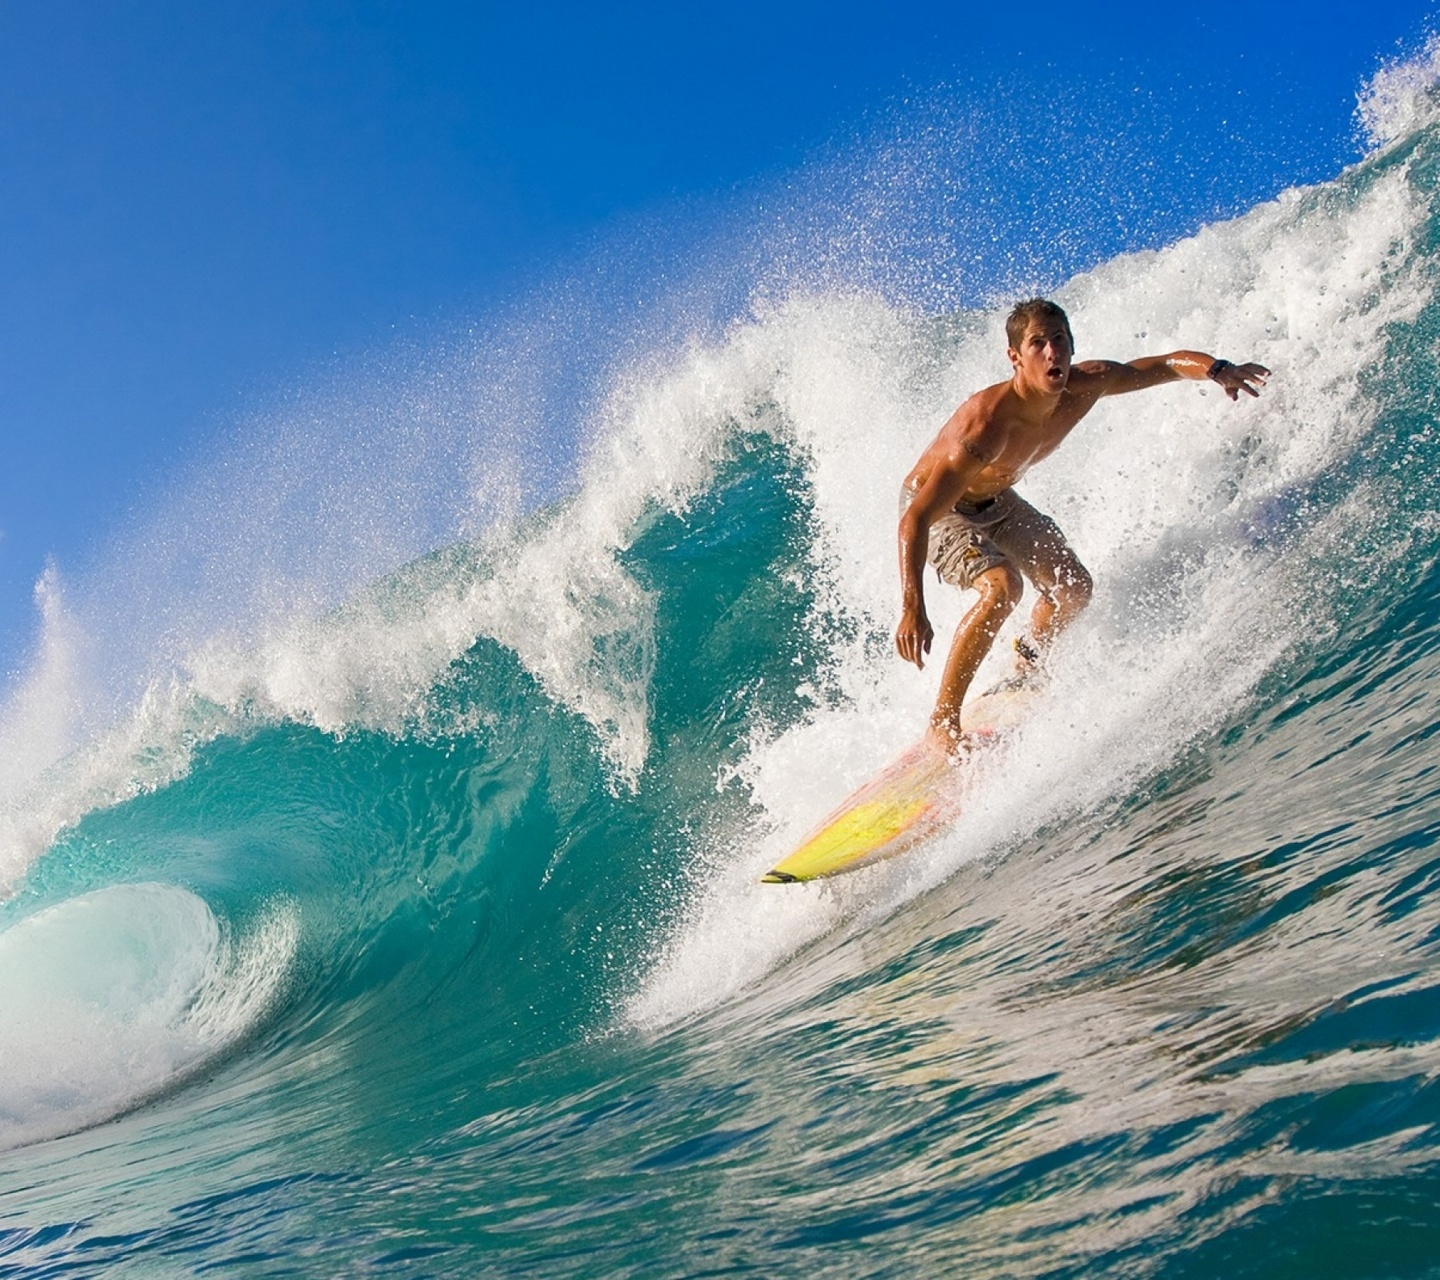 surfing 1440x1280 Screensaver wallpaper 1440x1280